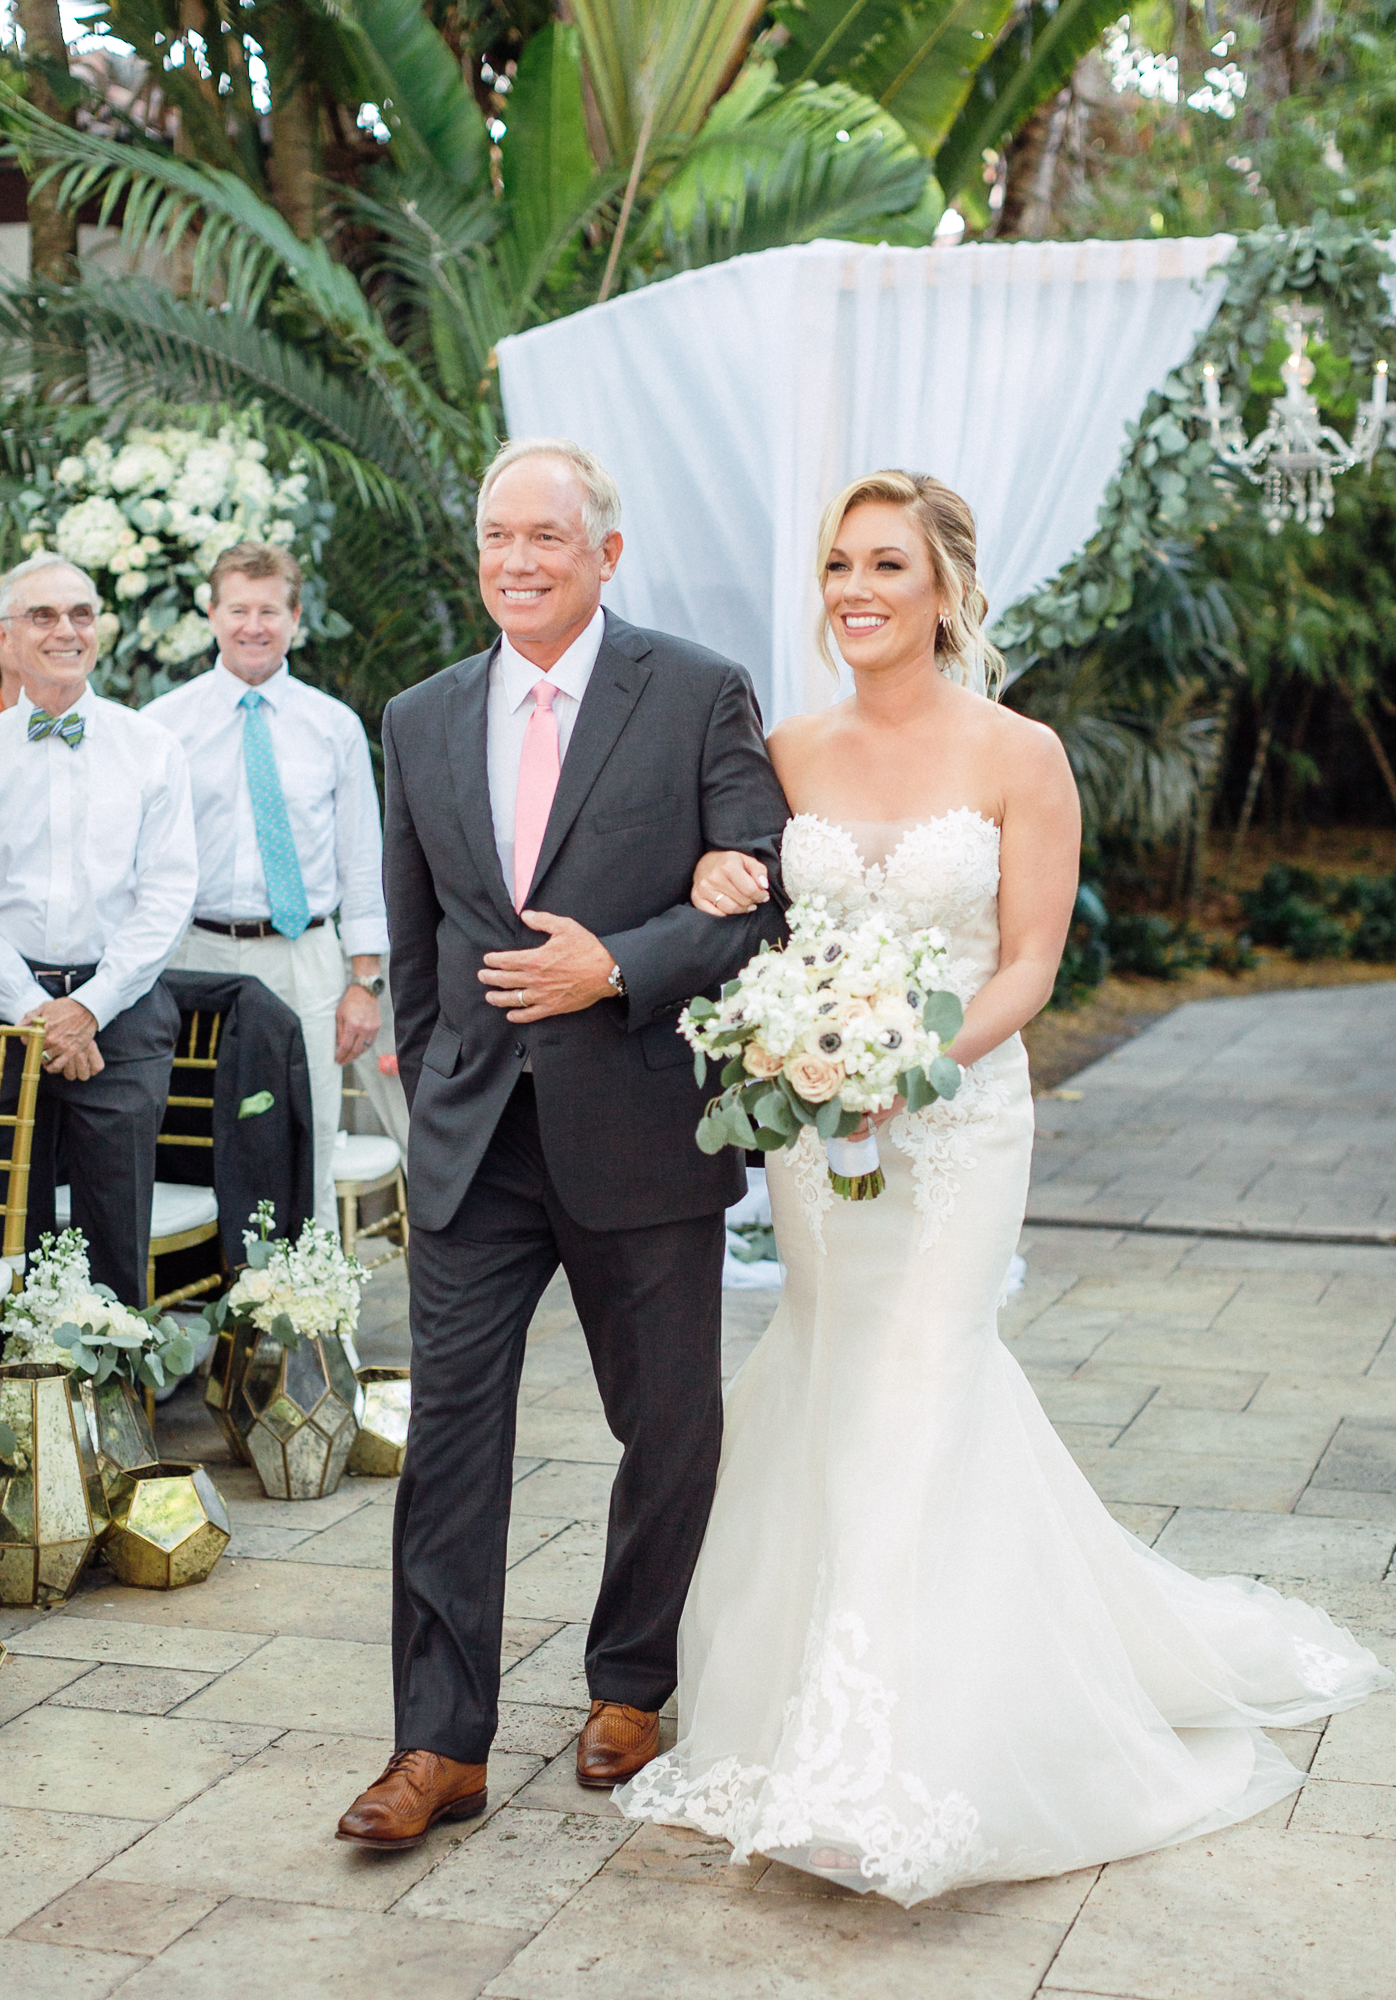 Father of the bride walks his daughter down the aisle in the outdoor ceremony at Fisher Island Club.